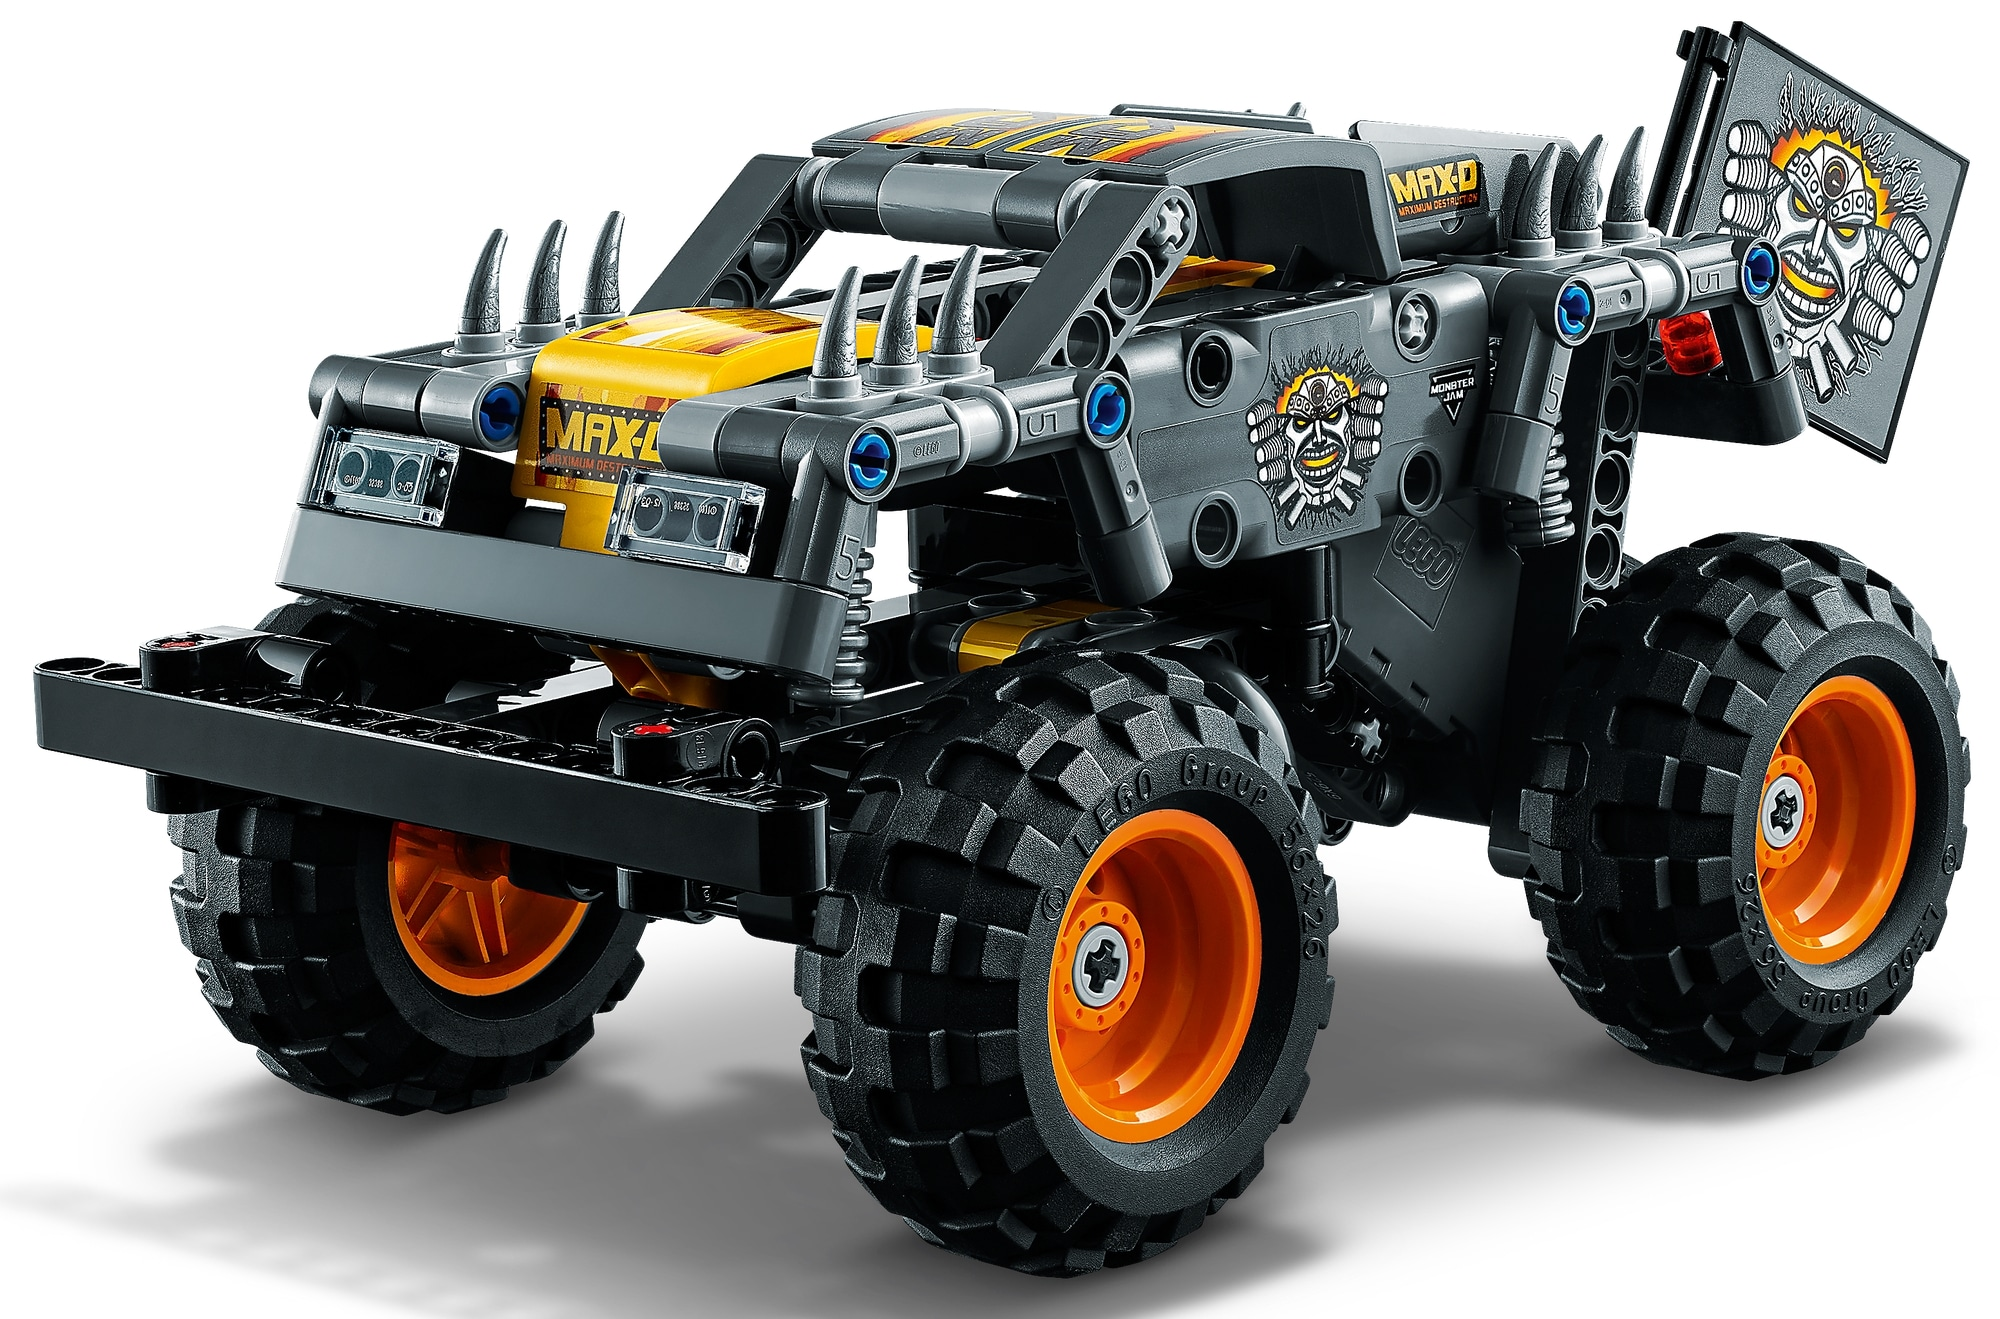 LEGO Technic 42119 Monster Jam Max D (5)